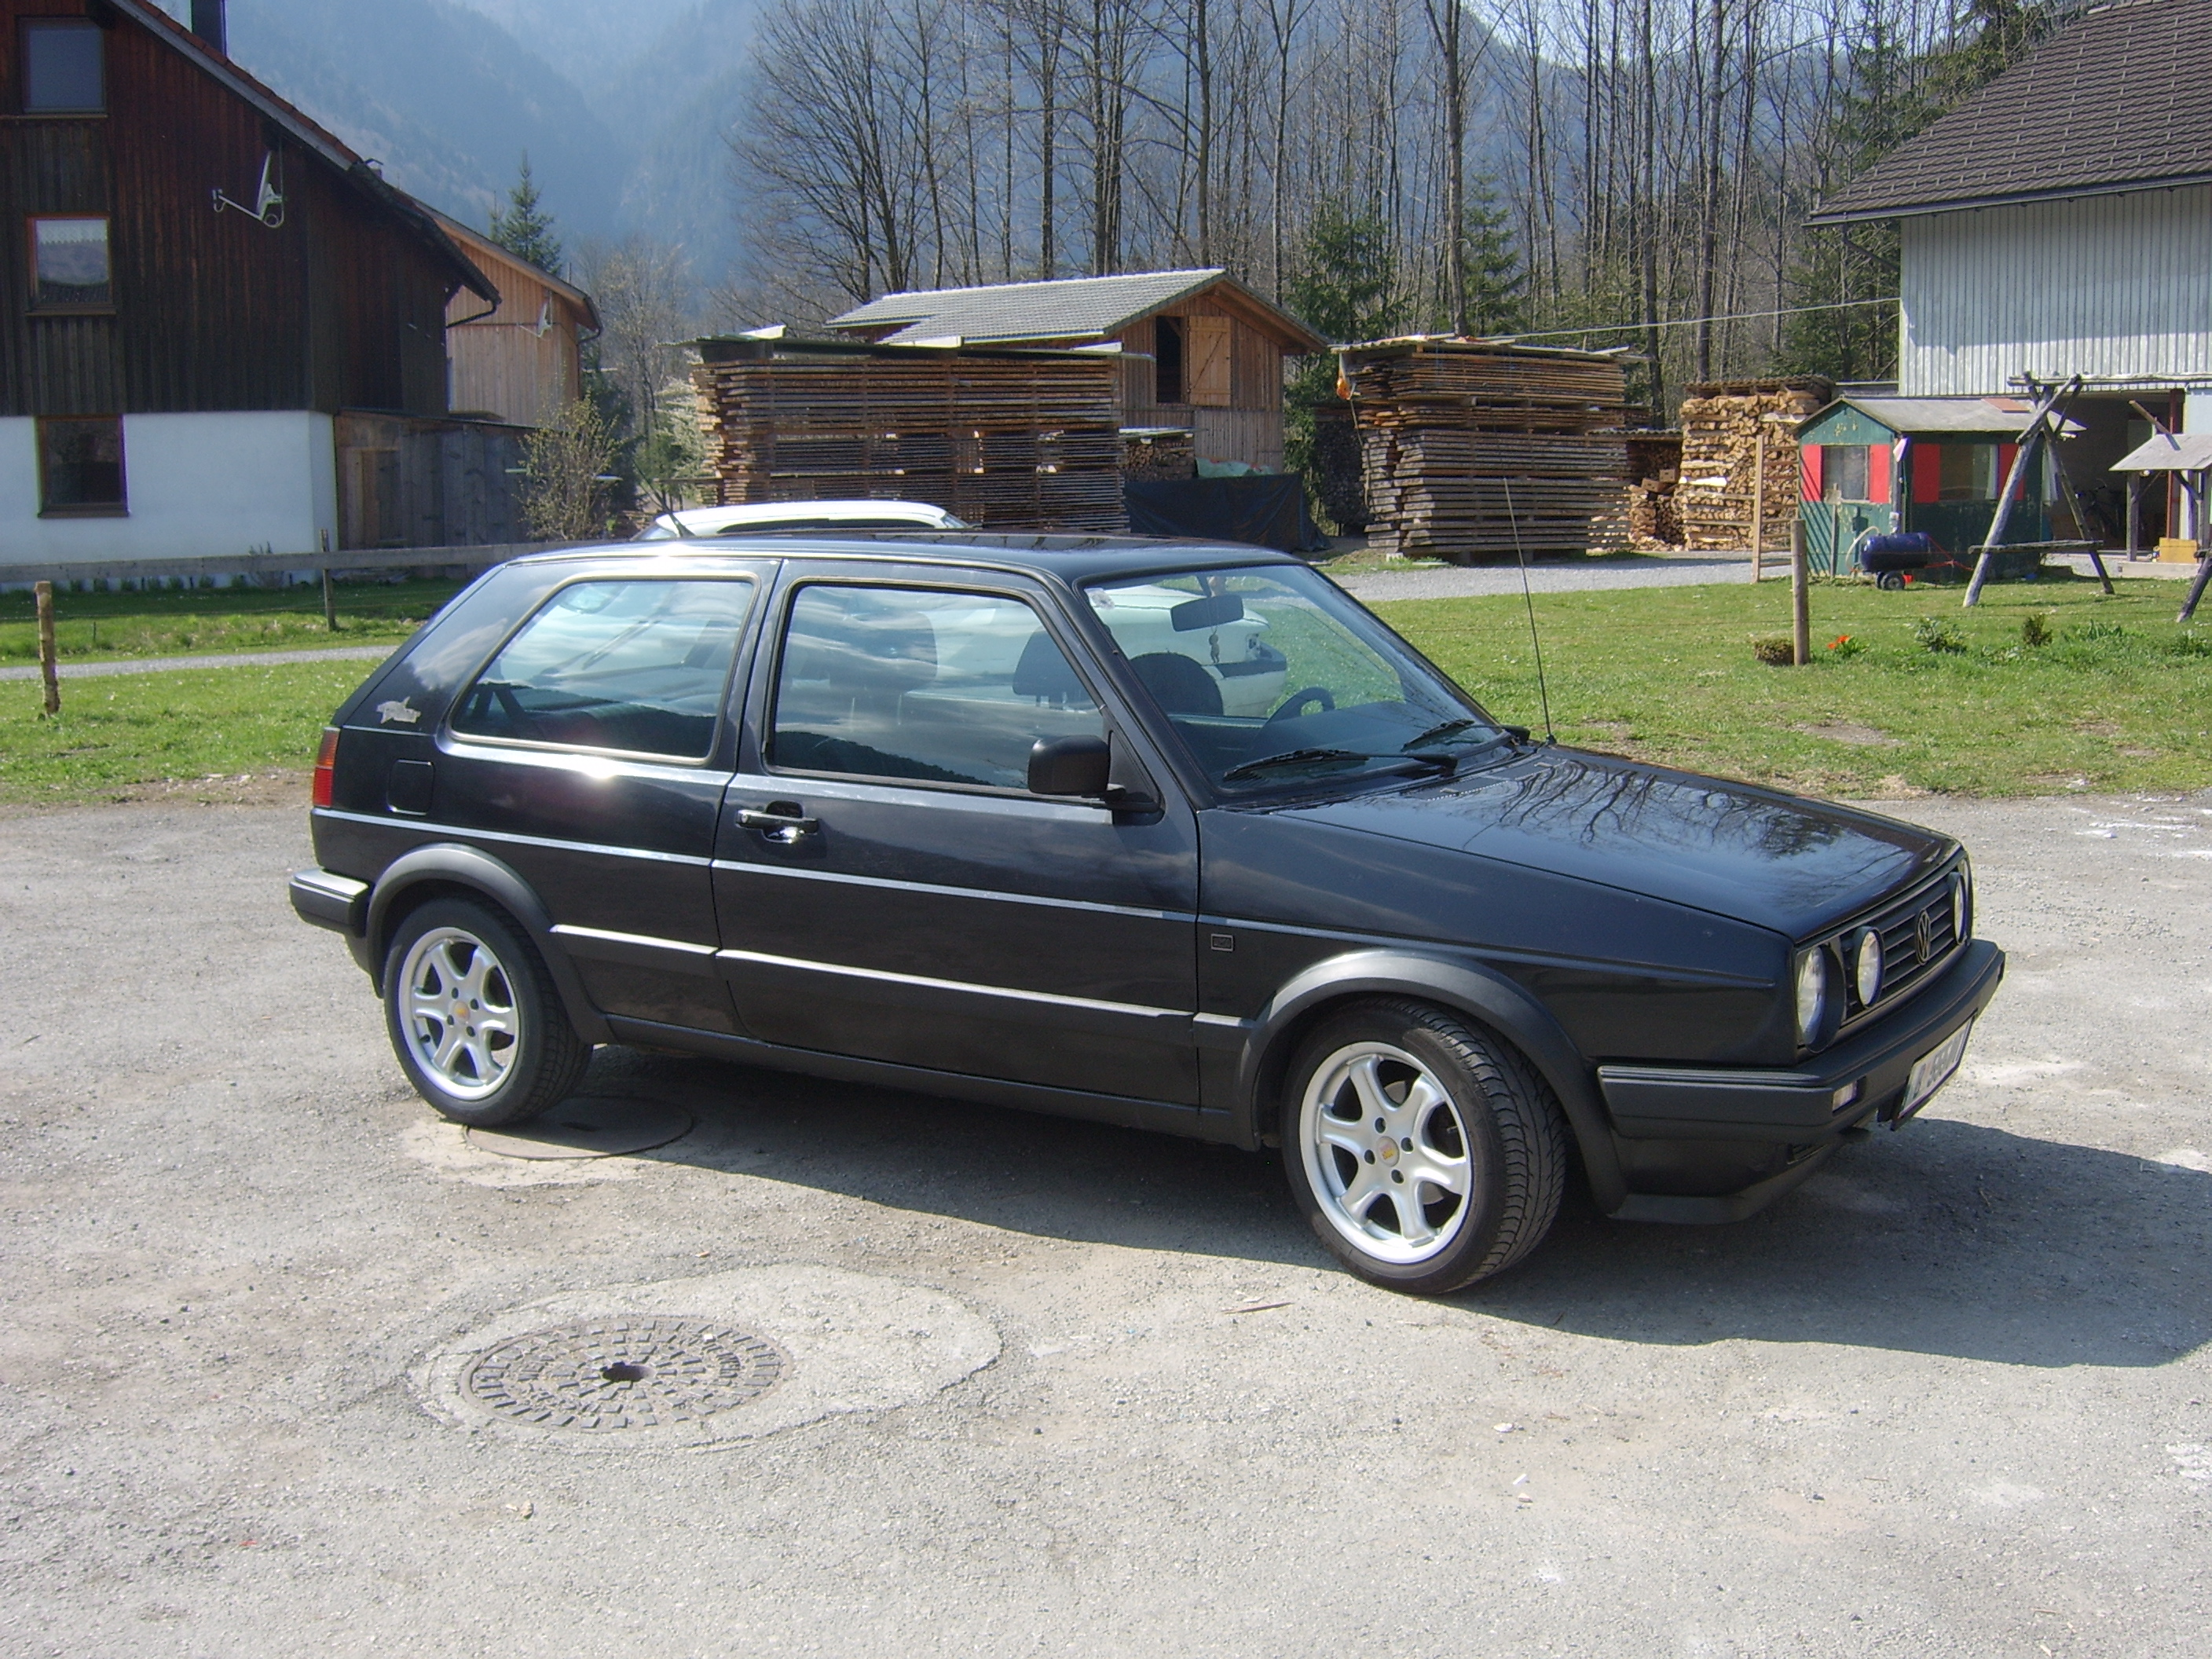 VW Golf 2 photo 03